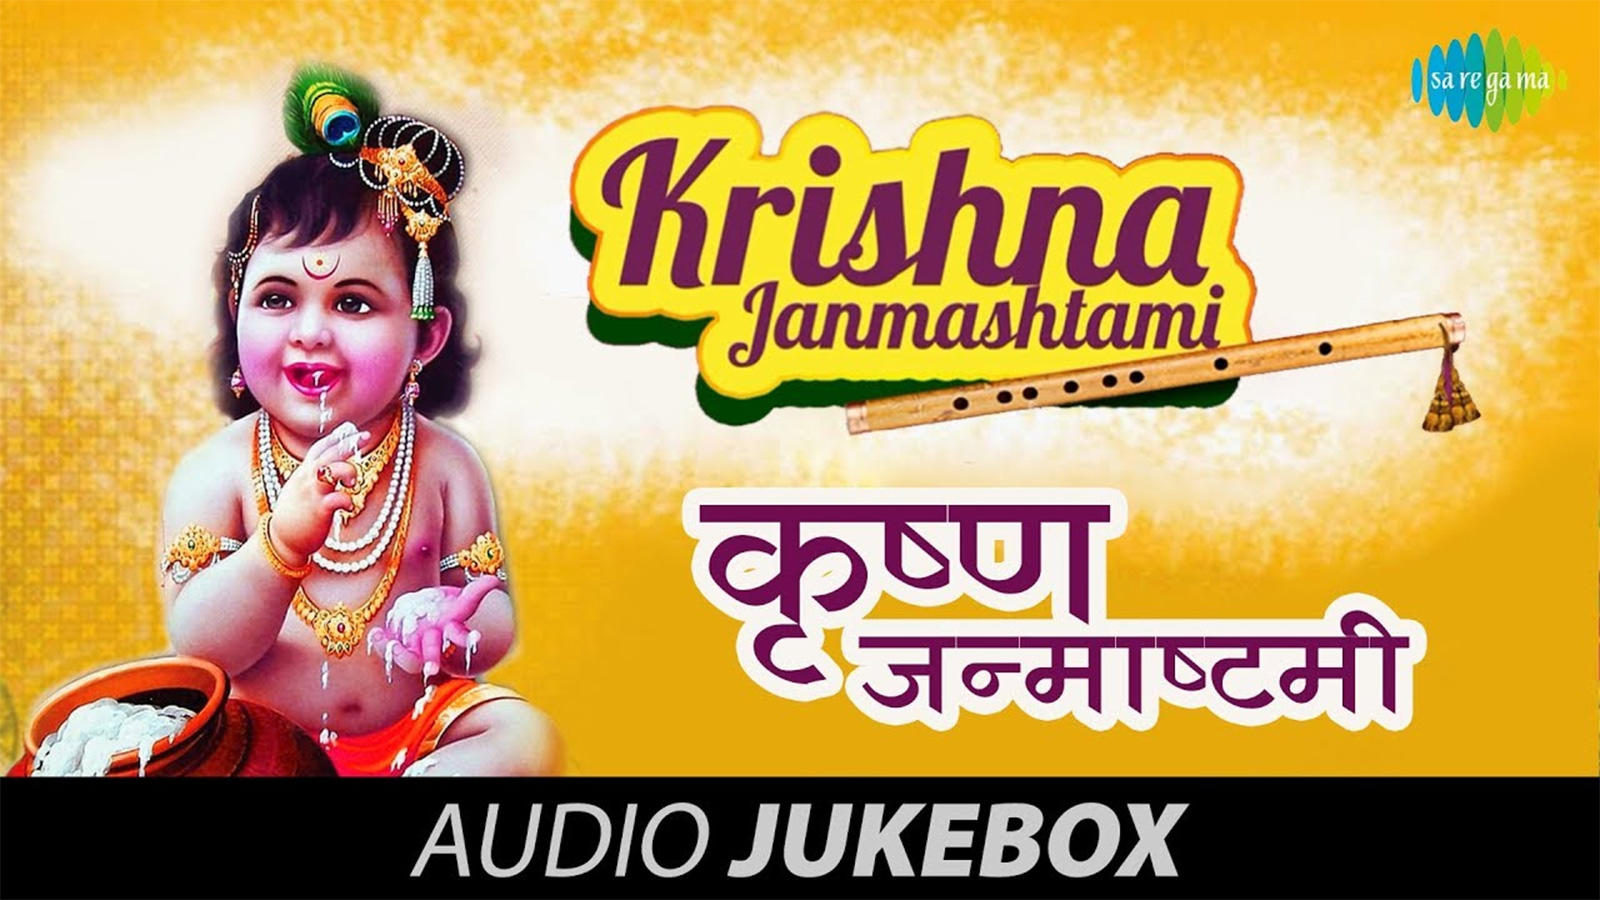 Dahihandi Songs 2019: Krishna Janmashtami Marathi Songs Audio Jukebox